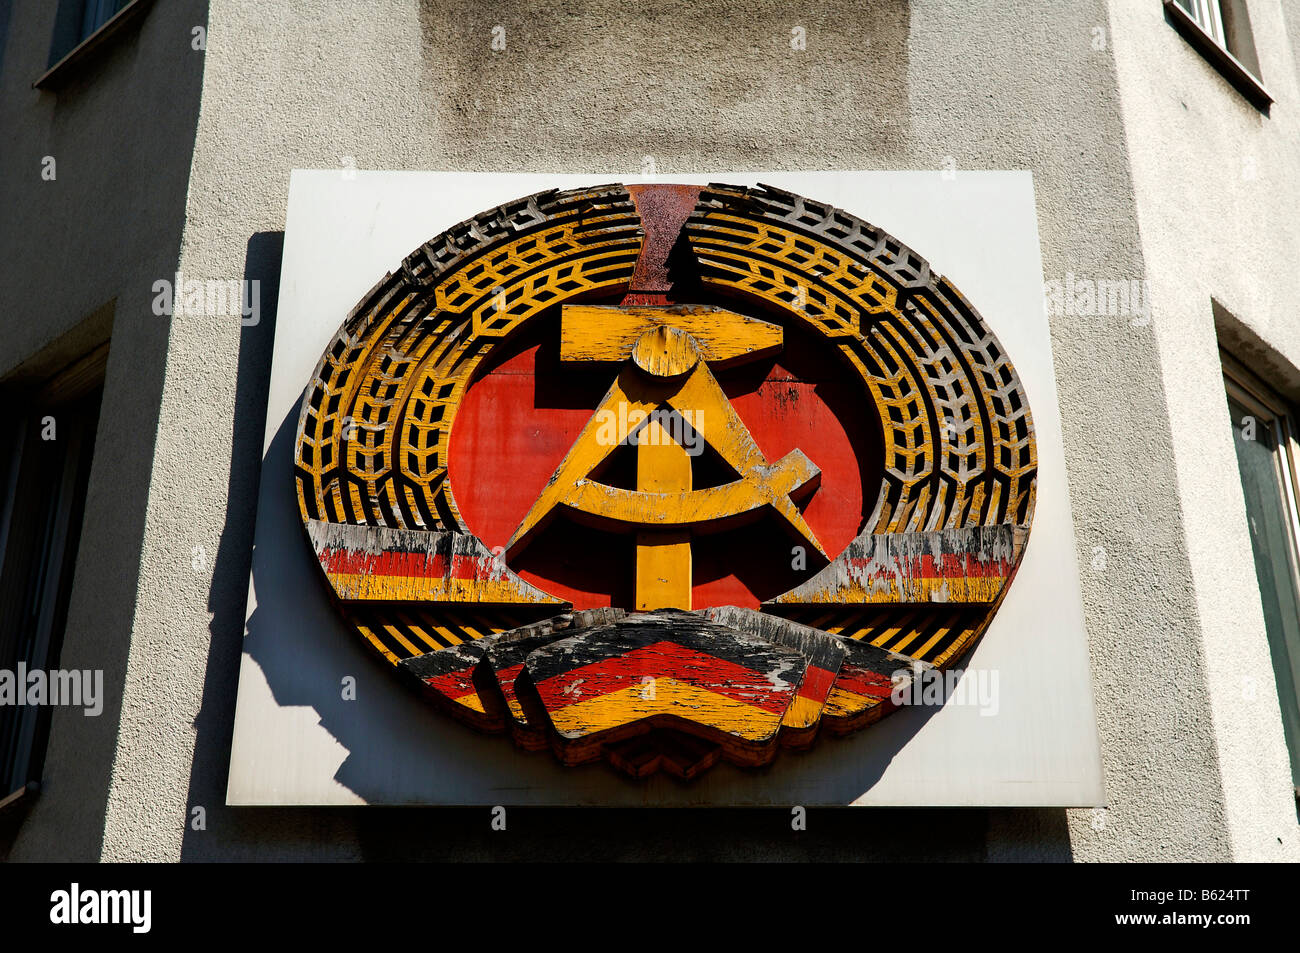 Sign, hammer and sickle, on Checkpoint Charlie, Berlin, Germany, Europe - Stock Image